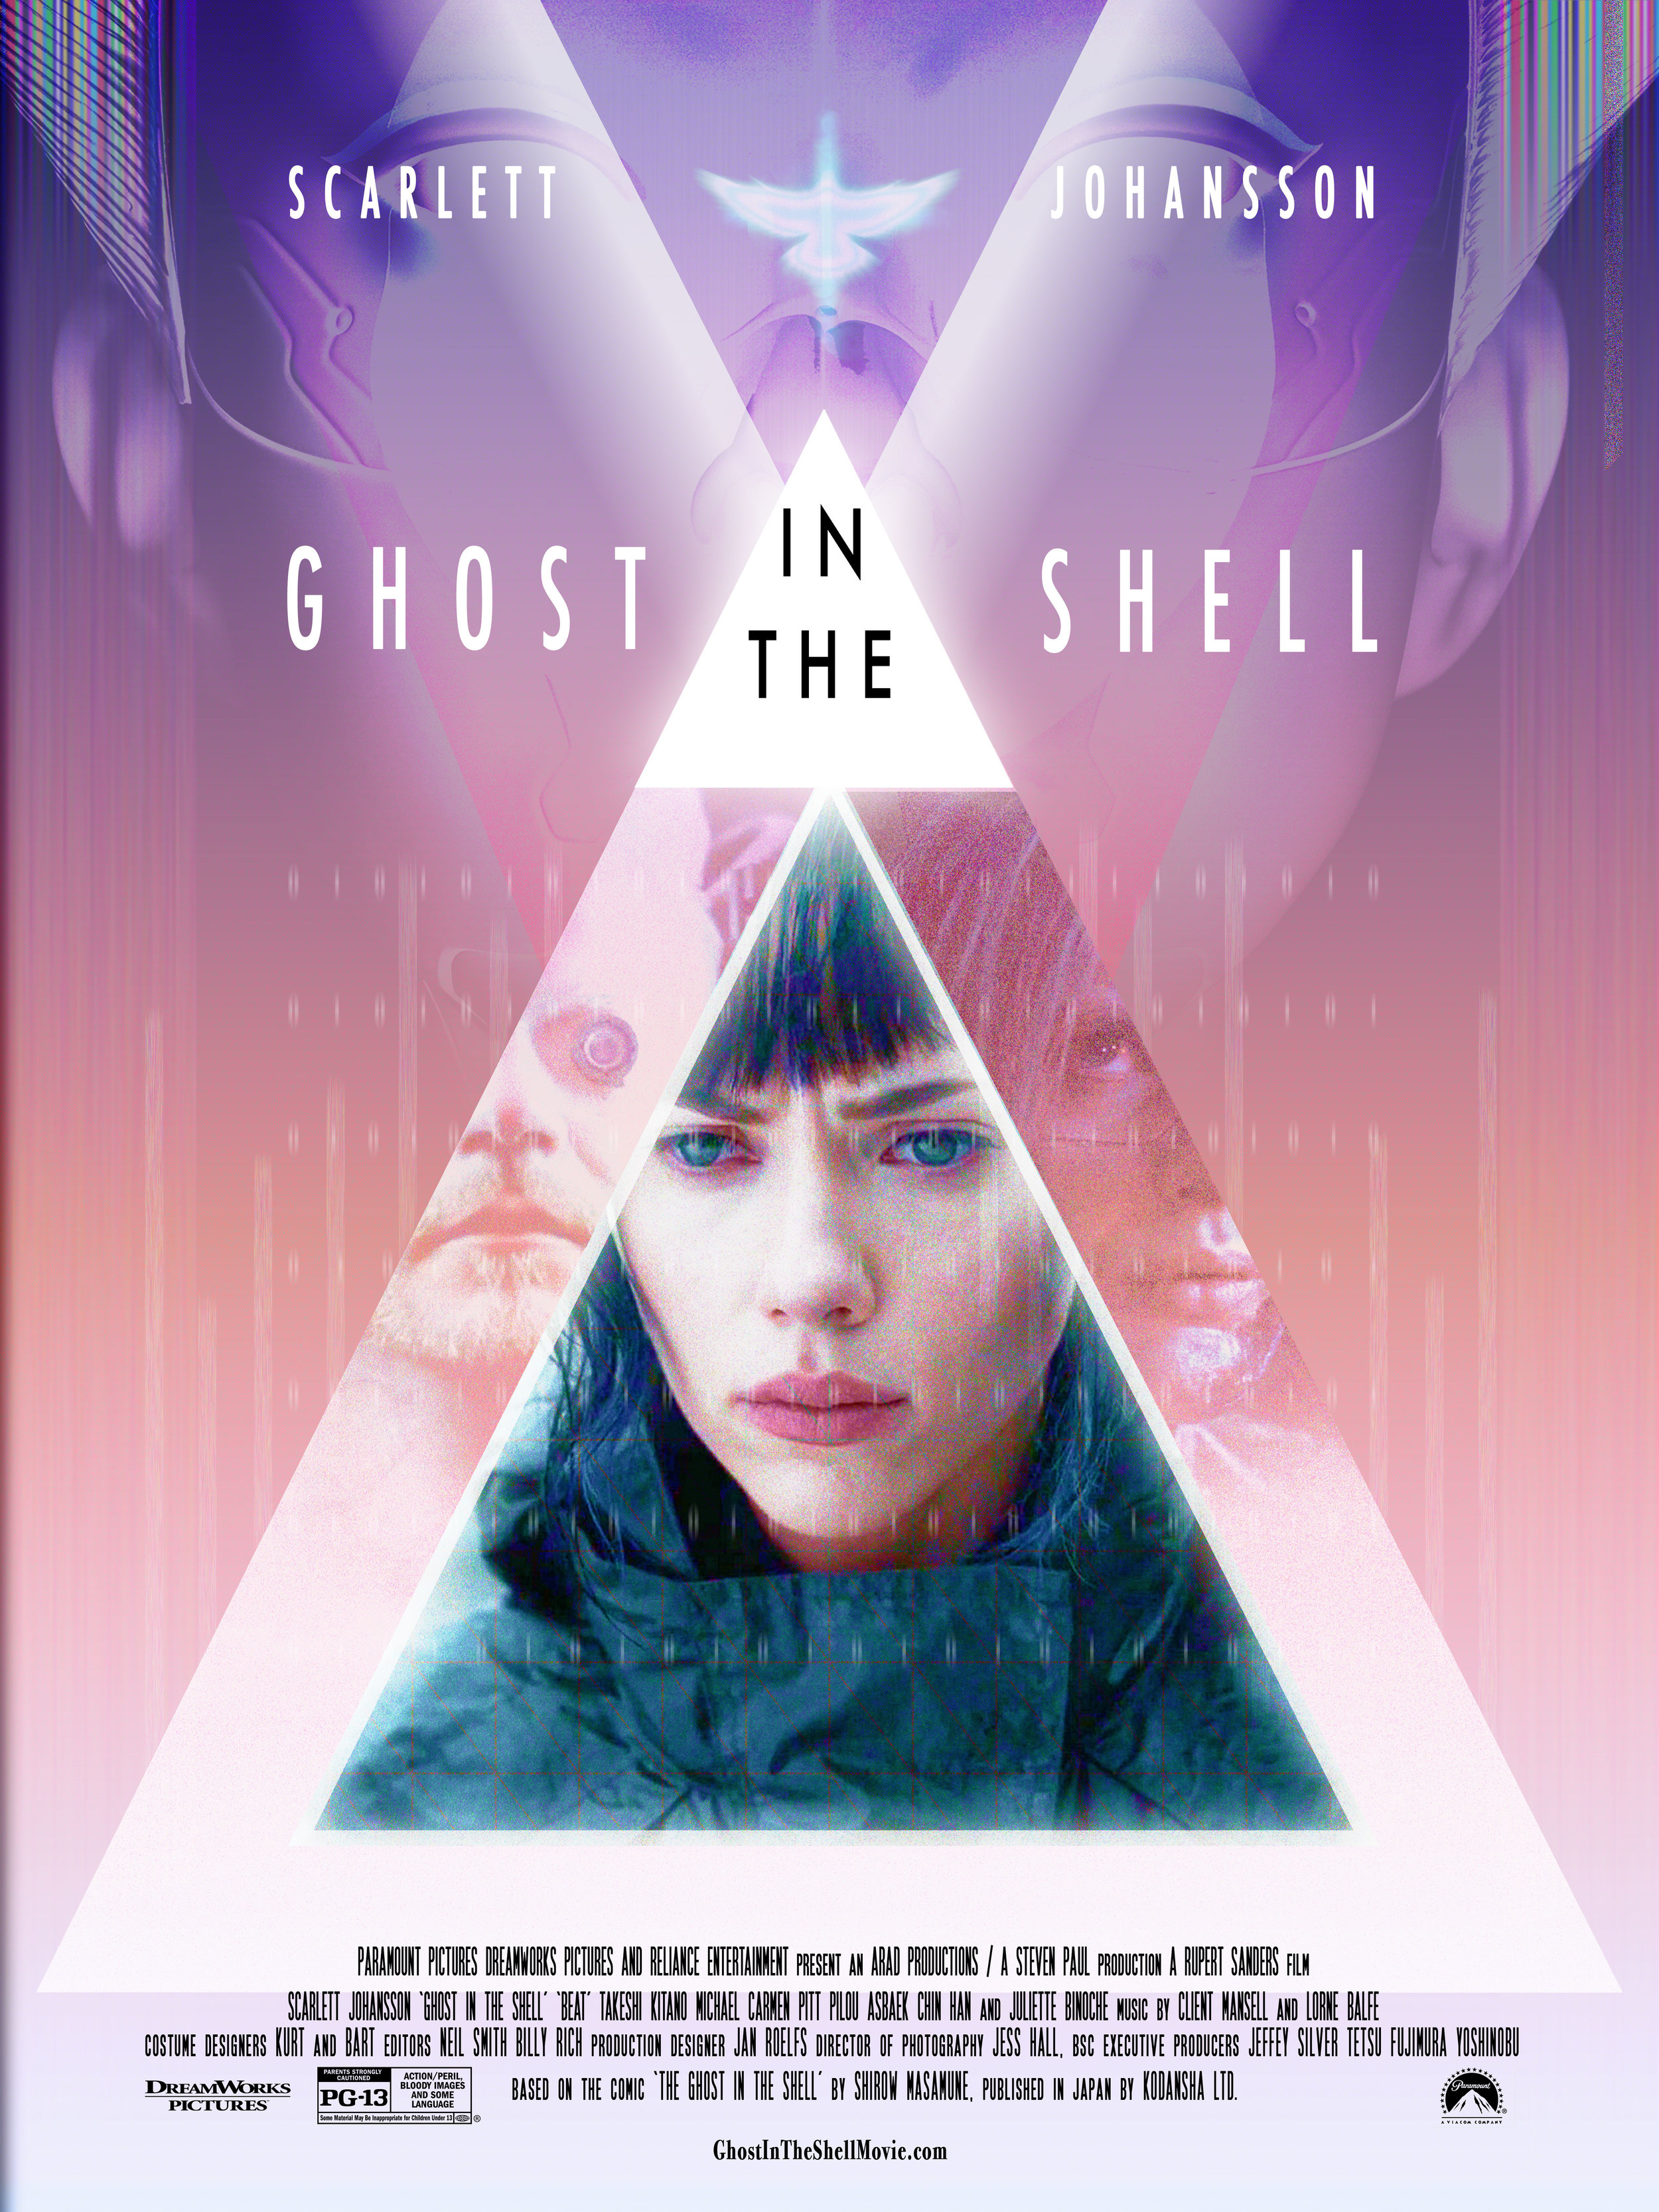 Ghost in the Shell - poster design.jpg